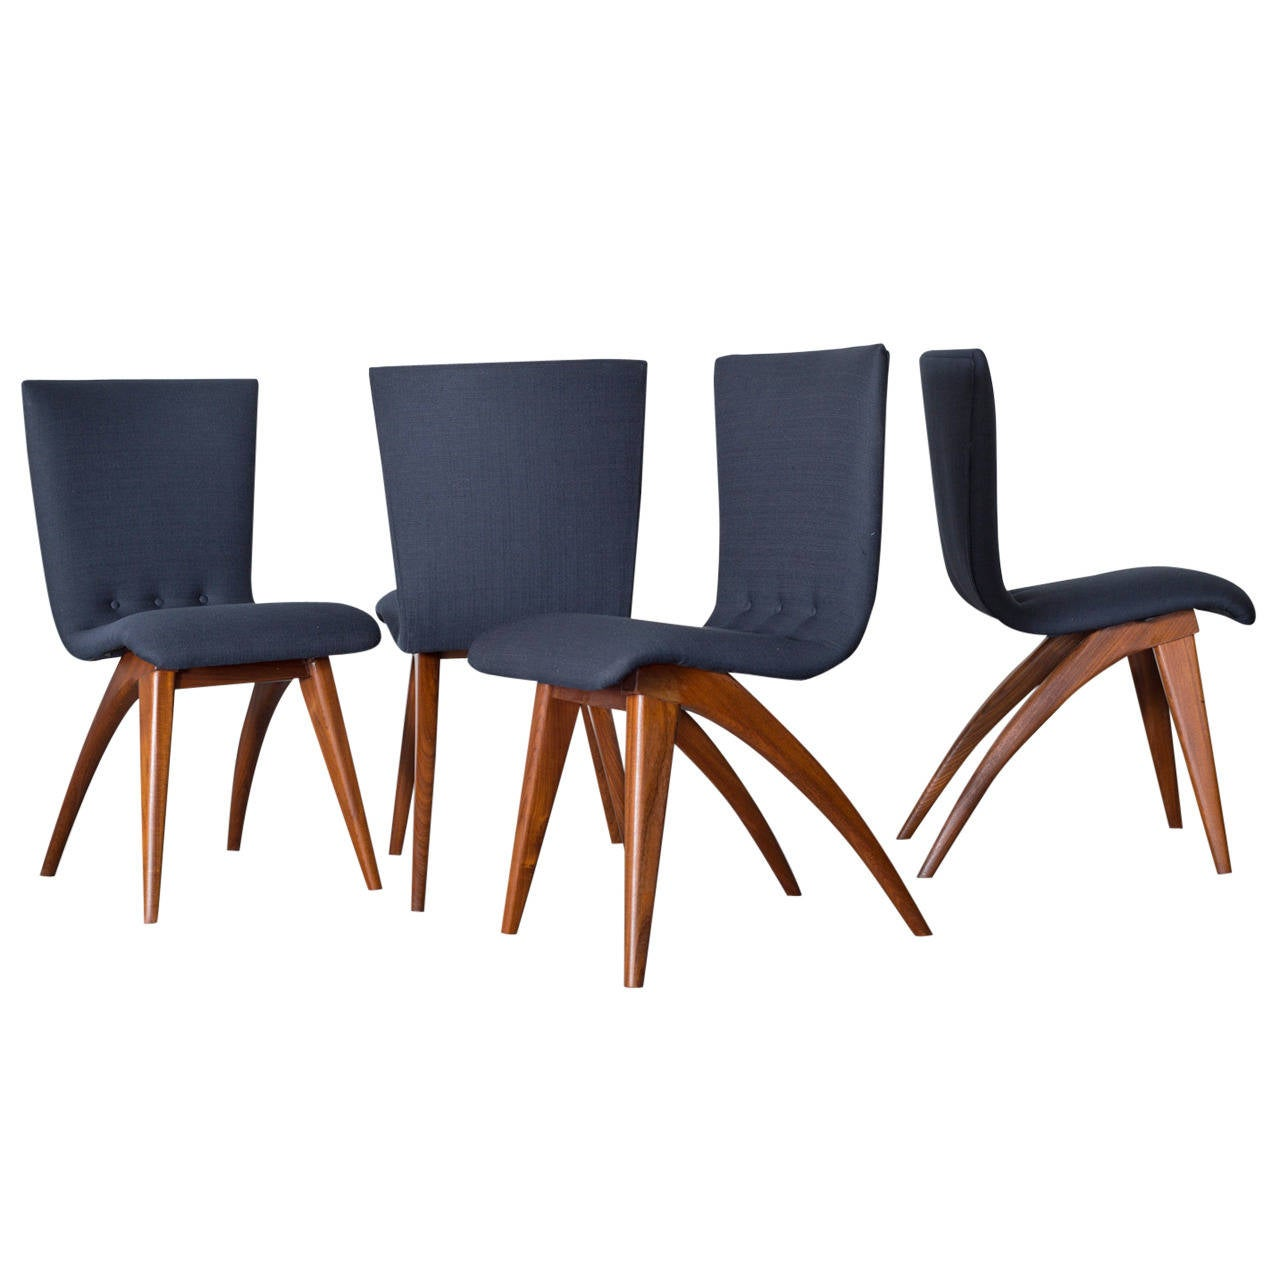 Set of four van os curved teak dining chairs in navy at - Four dining room chairs set ...